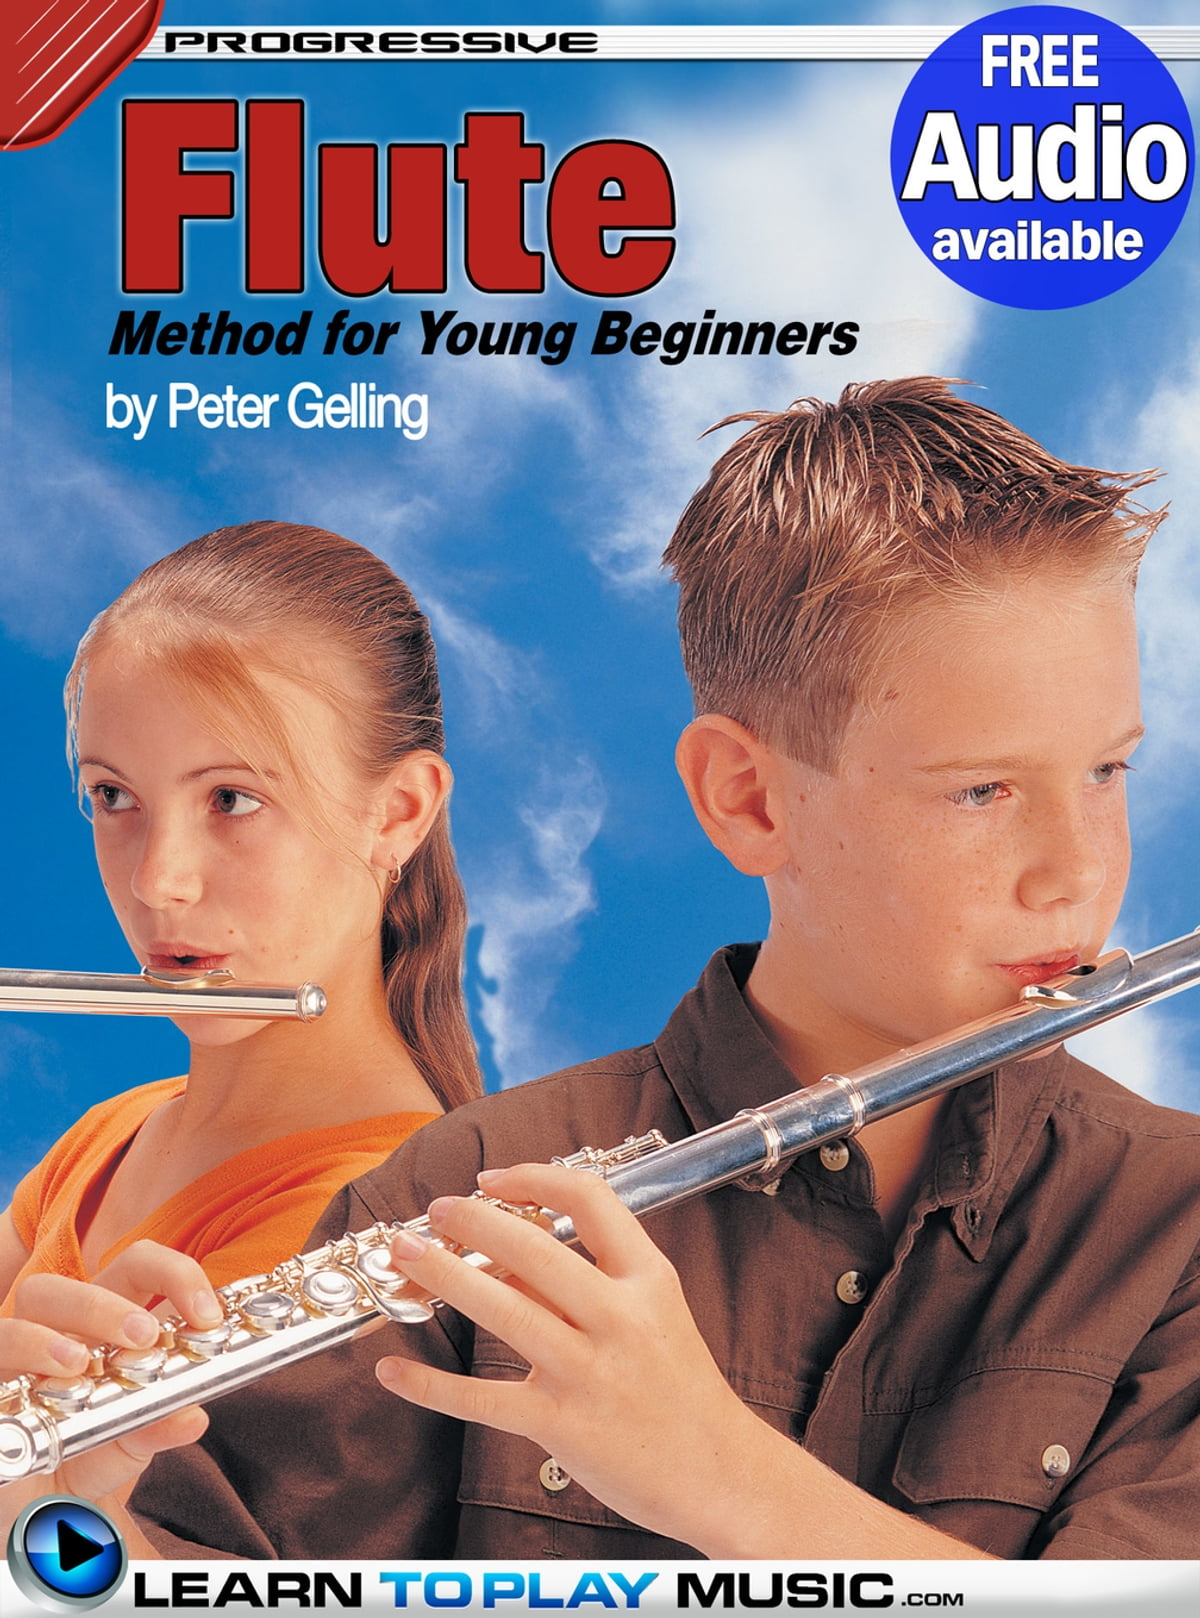 Flute Lessons By Skype For Professionals And Amateurs